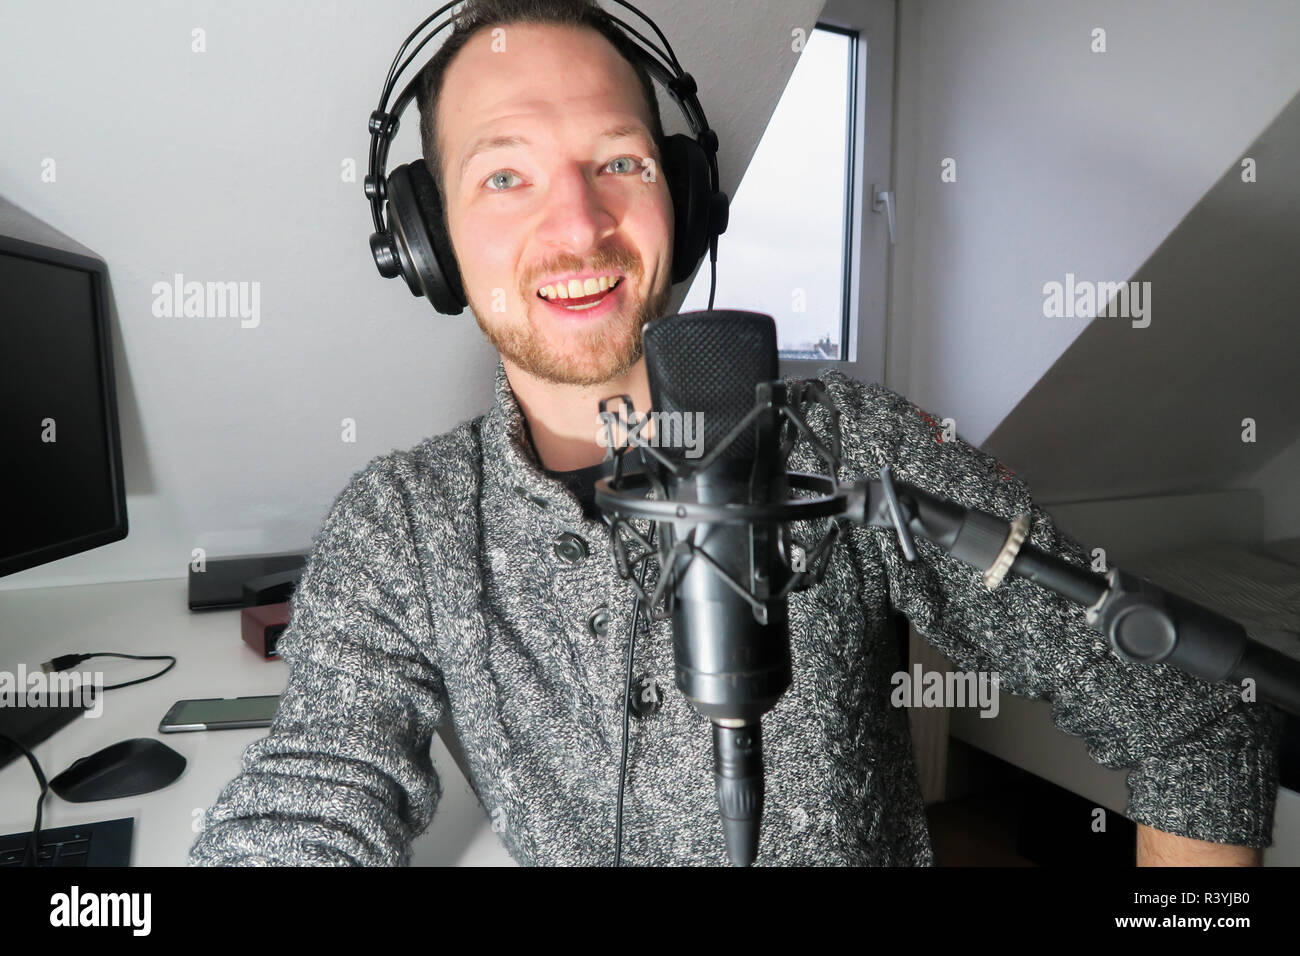 Young male behind condenser microphone radio podcast host voice recording Stock Photo